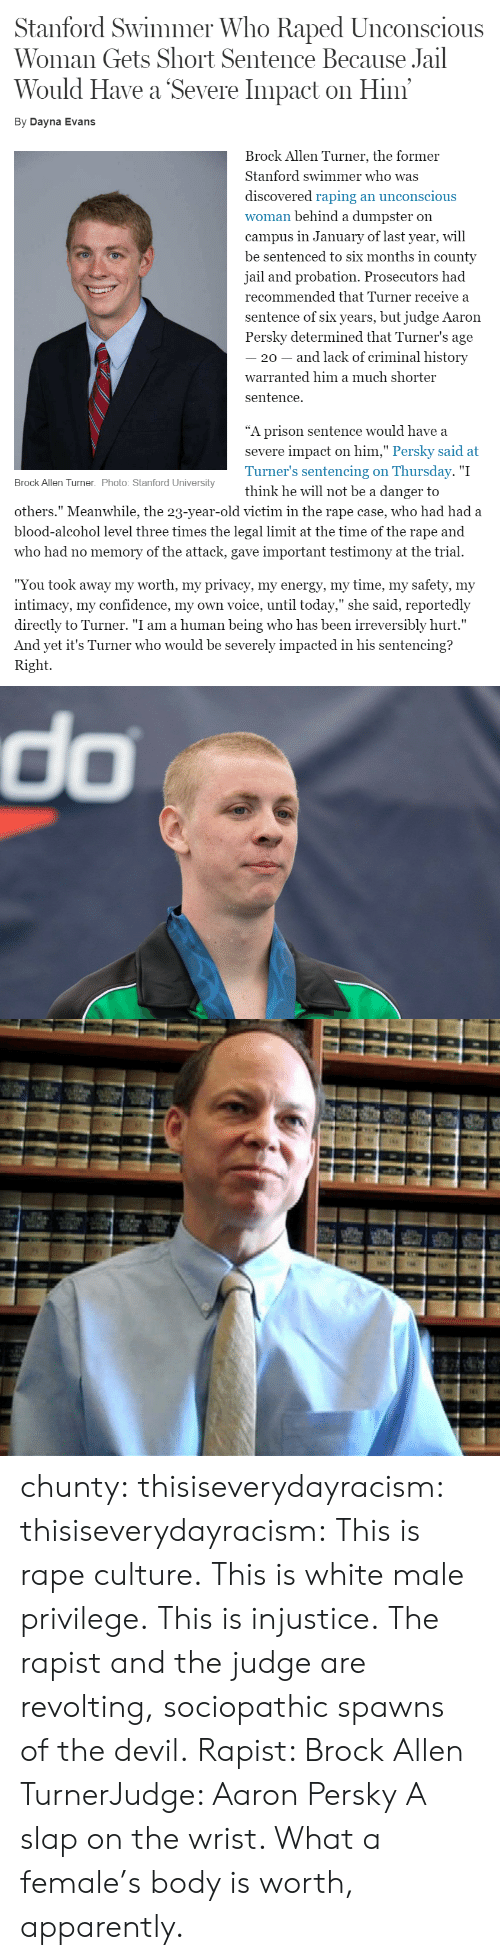 "Turners: Stanford Swimmer Who Raped Unconscious  Woman Gets Short Sentence Because Jail  Would Have a Severe Impact on Him  By Dayna Evans  Brock Allen Turner, the former  Stanford swimmer who was  discovered raping an unconscious  woman behind a dumpster on  campus in January of last year, will  be sentenced to six months in county  jail and probation. Prosecutors had  recommended that Turner receive a  sentence of six years, but judge Aaron  Persky determined that Turner's age  20 - and lack of criminal history  warranted him a much shorter  sentence.  ""A prison sentence would have a  severe impact on him,"" Persky said at  Turner's sentencing on Thursday. ""I  think he will not be a danger to  Brock Allen Turner. Photo: Stanford University  others."" Meanwhile, the 23-year-old victim in the rape case, who had had a  blood-alcohol level three times the legal limit at the time of the rape and  who had no memory of the attack, gave important testimony at the trial.  ""You took away my worth, my privacv, my energv, my time, my safetv, my  intimacy, my confidence, my own voice, until today,"" she said, reportedly  directly to Turner. ""I am a human being who has been irreversibly hurt.""  And yet it's Turner who would be severely impacted in his sentencing?  Right.   do chunty:  thisiseverydayracism:  thisiseverydayracism:  This is rape culture.  This is white male privilege.  This is injustice.  The rapist and the judge are revolting, sociopathic spawns of the devil.  Rapist: Brock Allen TurnerJudge: Aaron Persky  A slap on the wrist. What a female's body is worth, apparently."